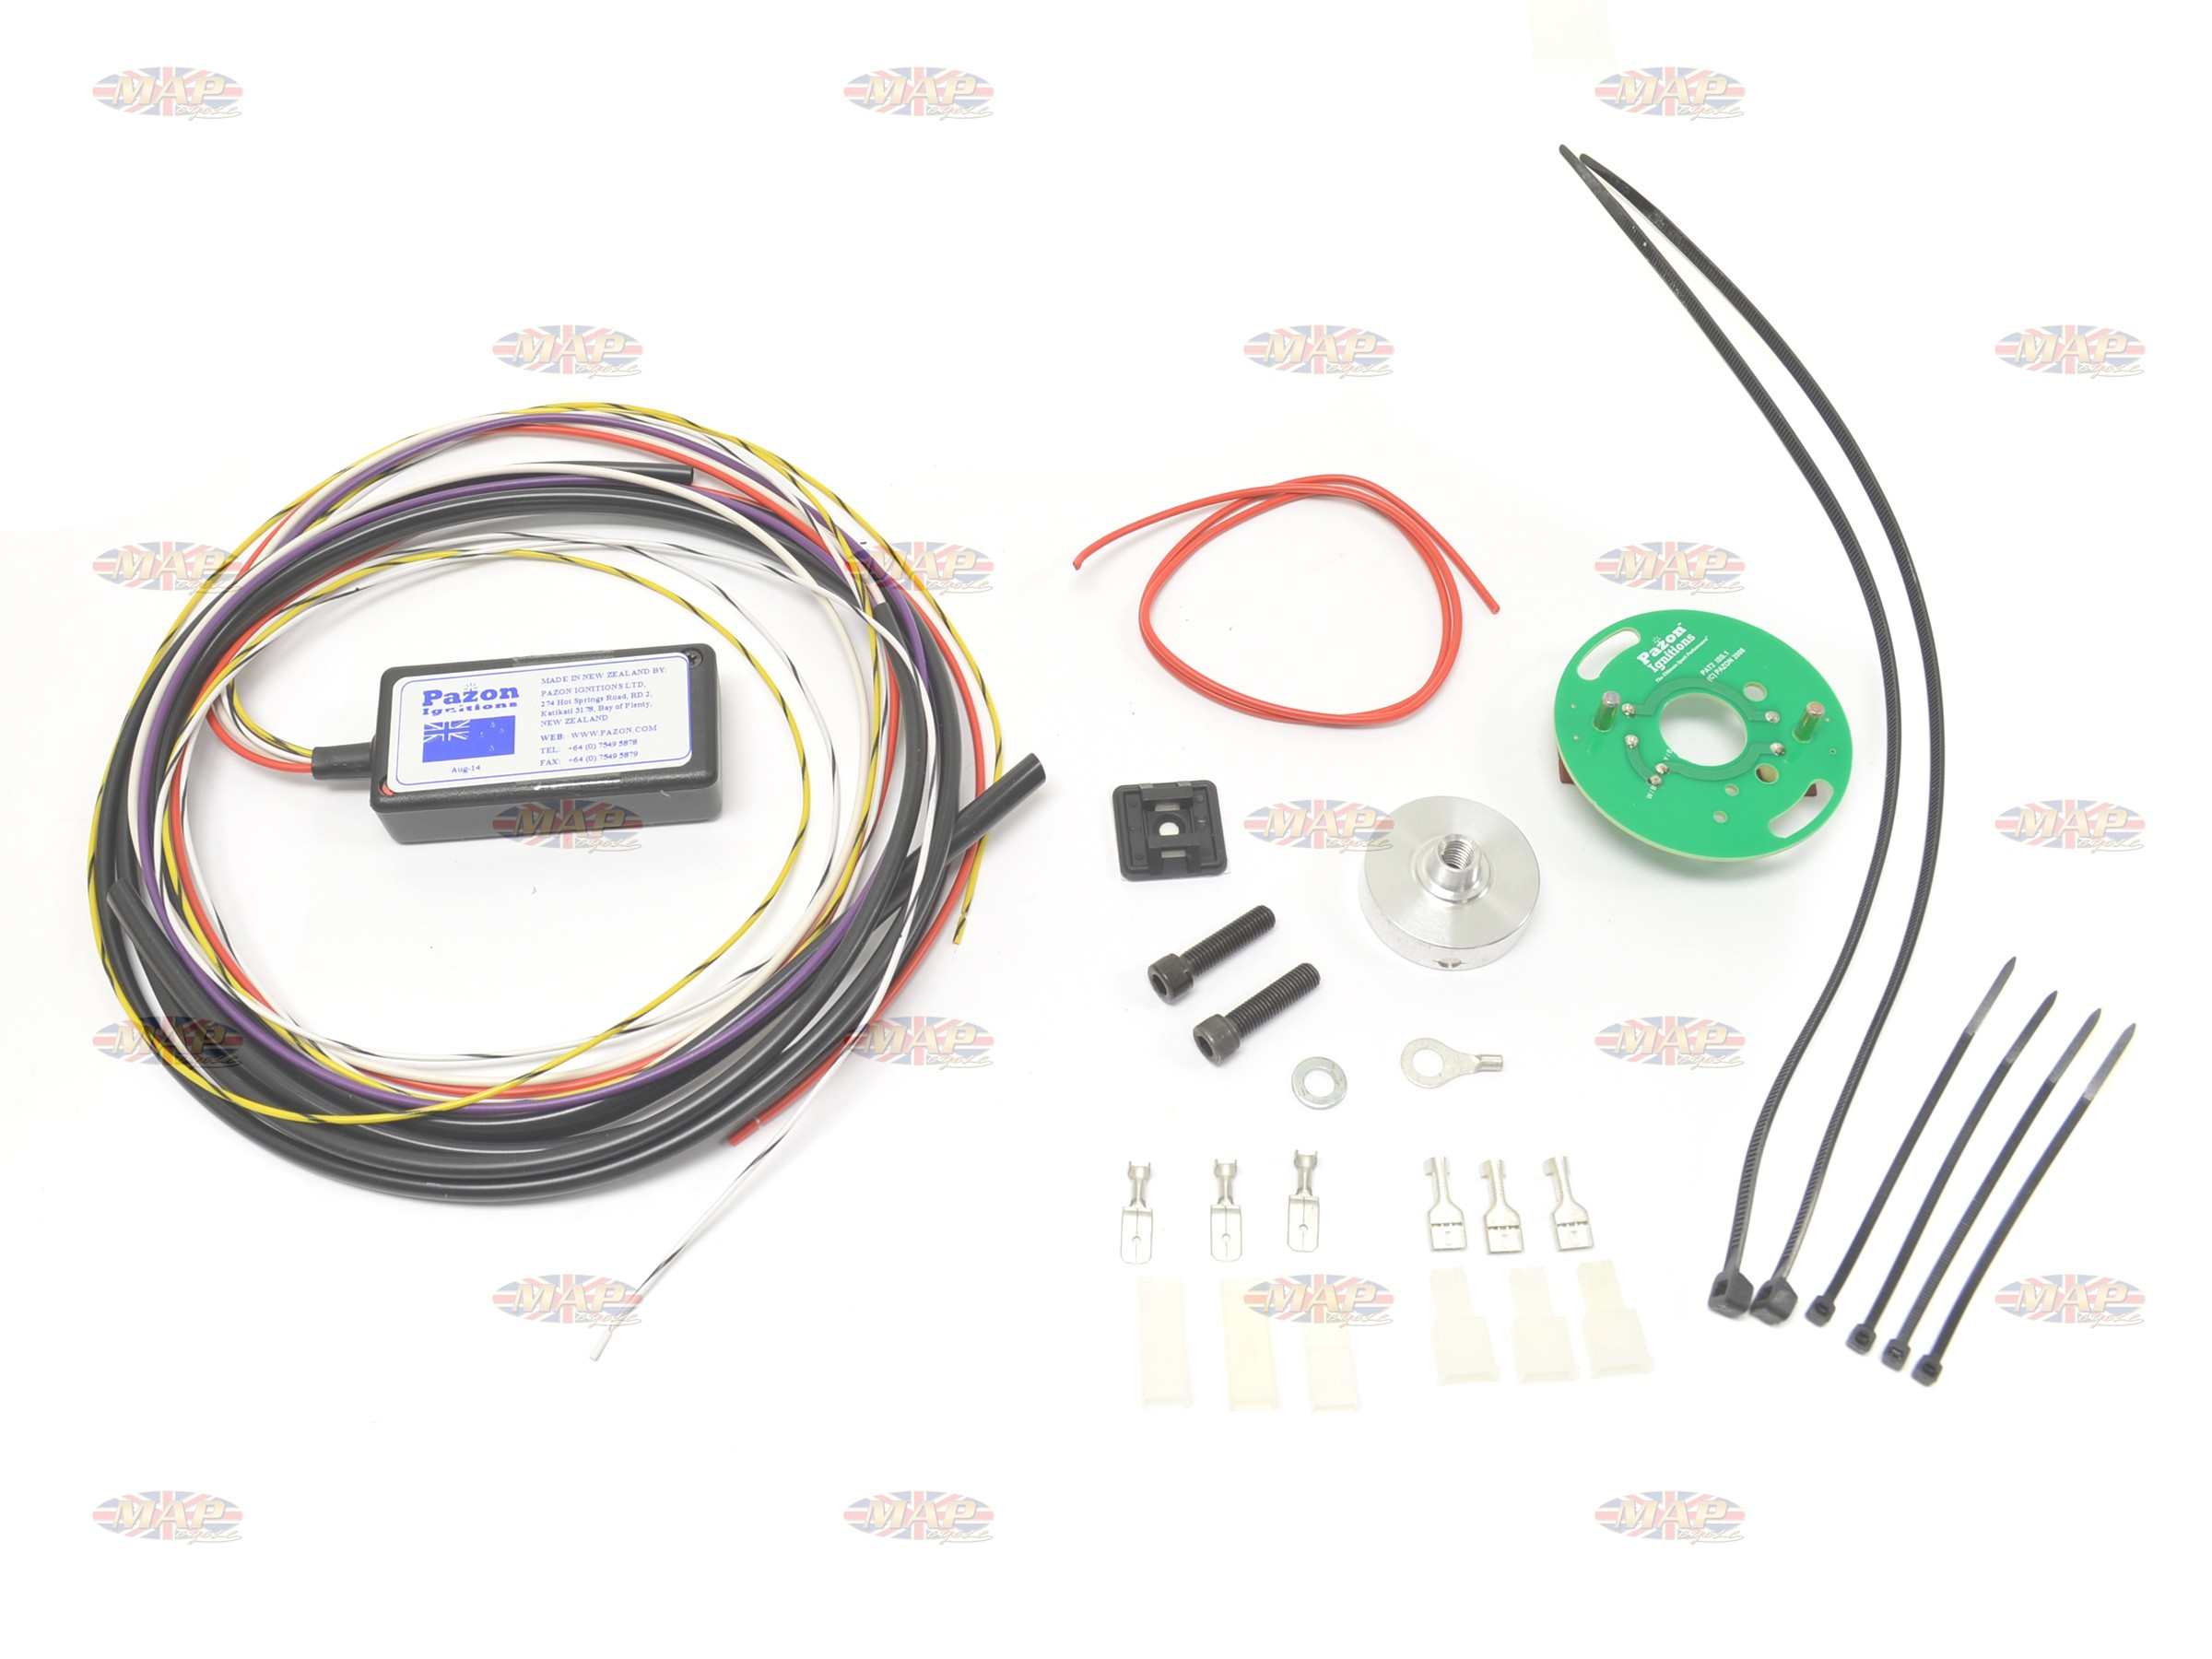 pazon sure fire 6 volt electronic ignition for triumph bsa singles rh mapcycle com 6 Volt Coil Wiring Farmall Cub 6 Volt Wiring